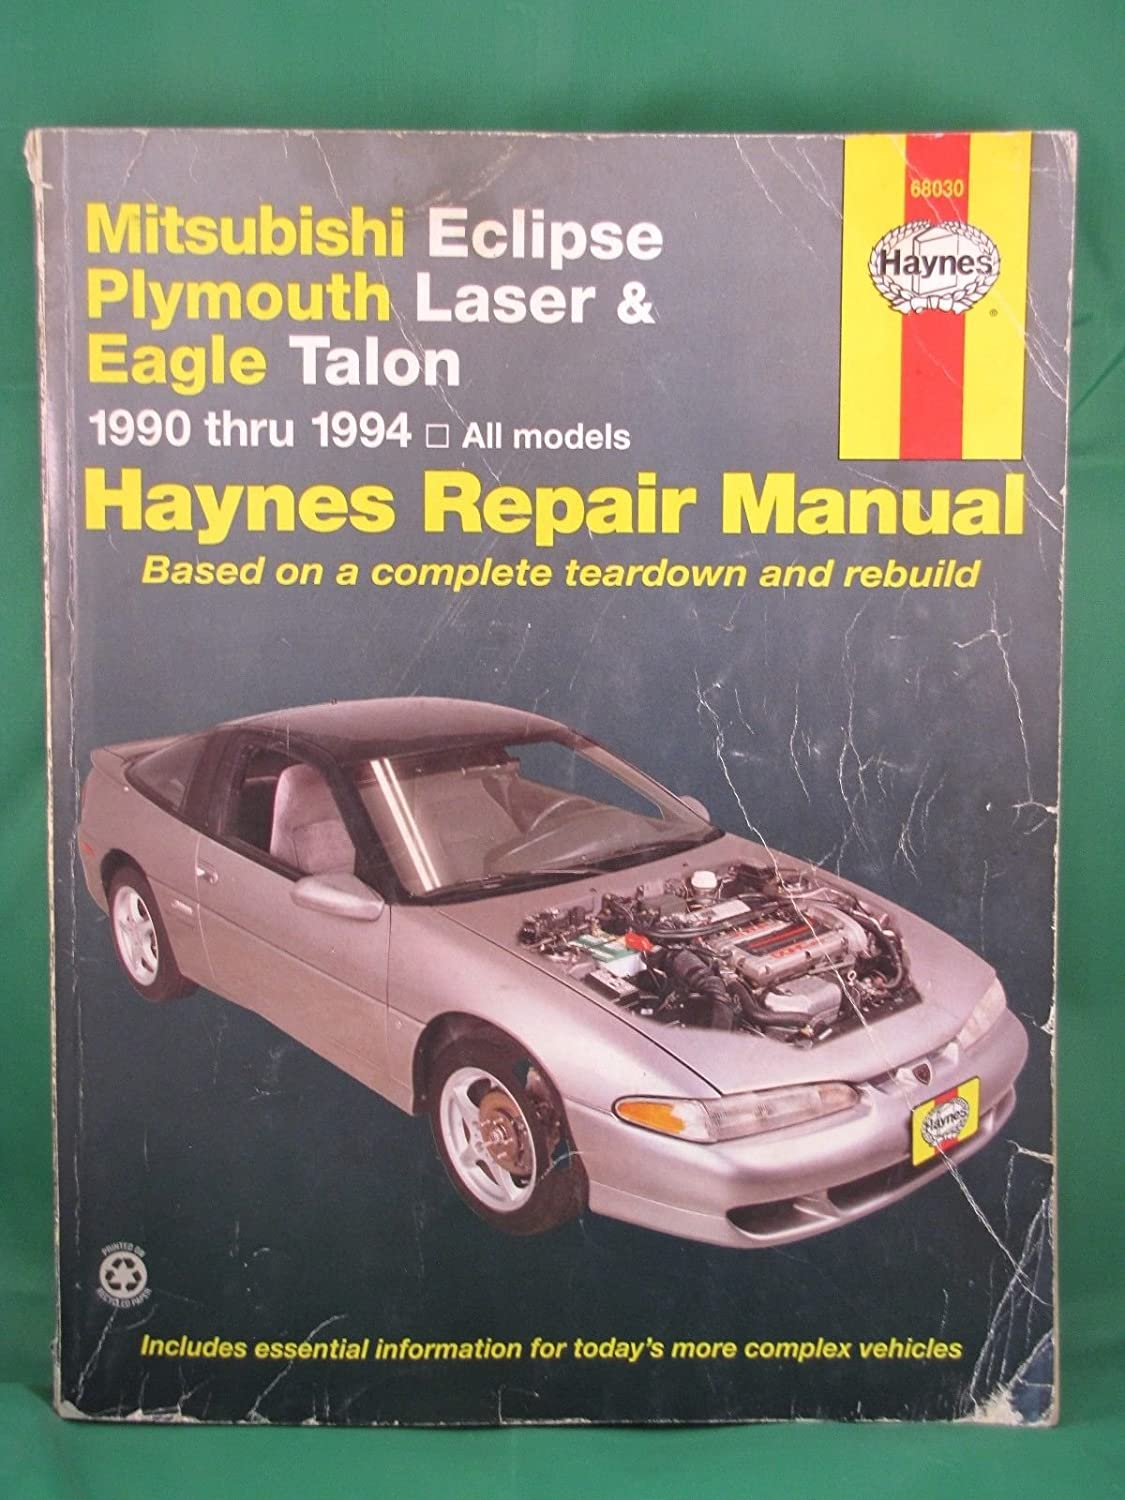 Amazon.com : 1990-1994 Haynes Repair Manual - Mitsubishi Eclipse/Plymouth  Laser/Eagle Talon : Everything Else